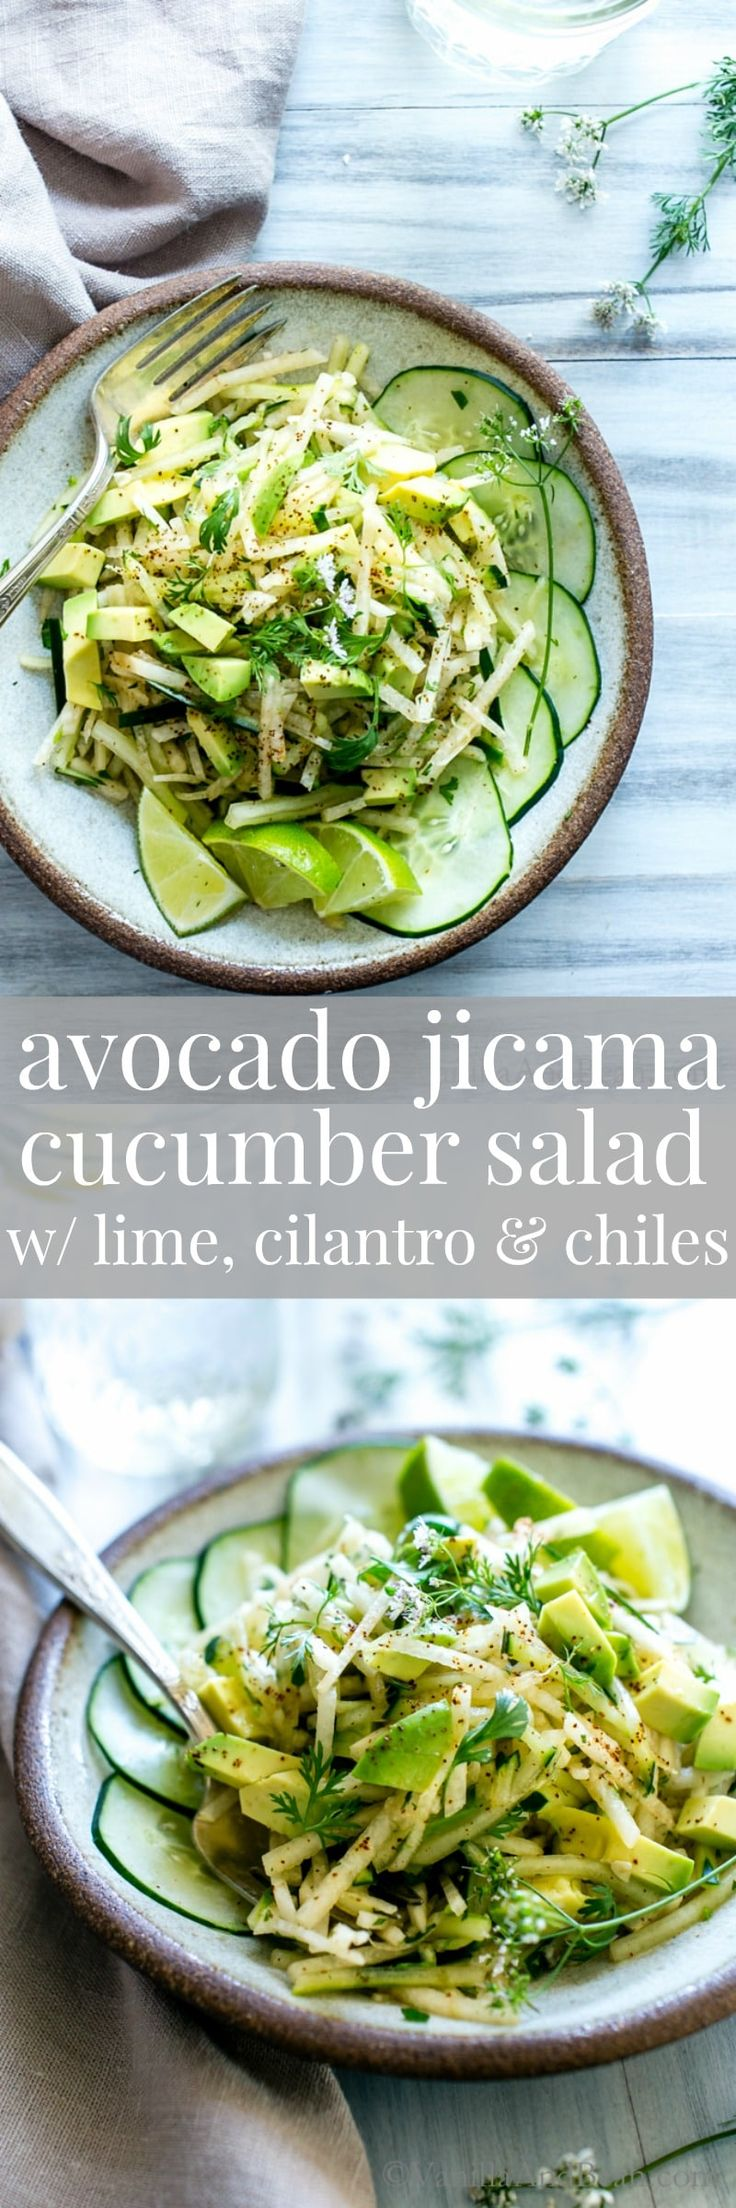 Crunchy and creamy with a hint of spice this hydrating, and nourishing Avocado Jicama Cucumber Salad with lime, cilantro and a pinch chiles will take the edge off Summertime heat. Vegan + GF